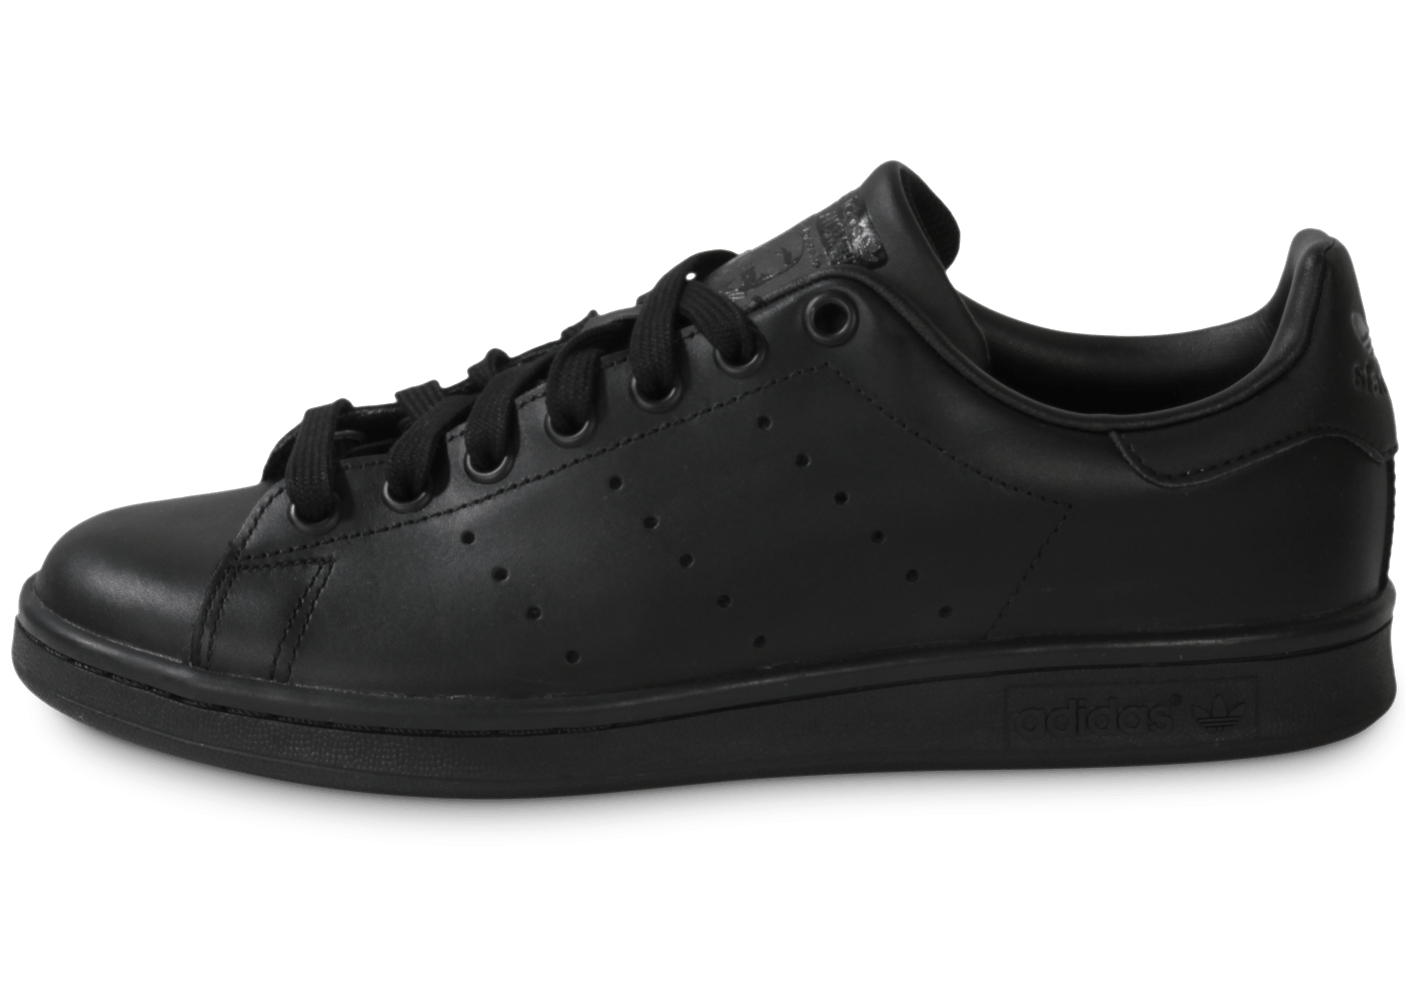 adidas stan smith noire chaussures baskets homme chausport. Black Bedroom Furniture Sets. Home Design Ideas